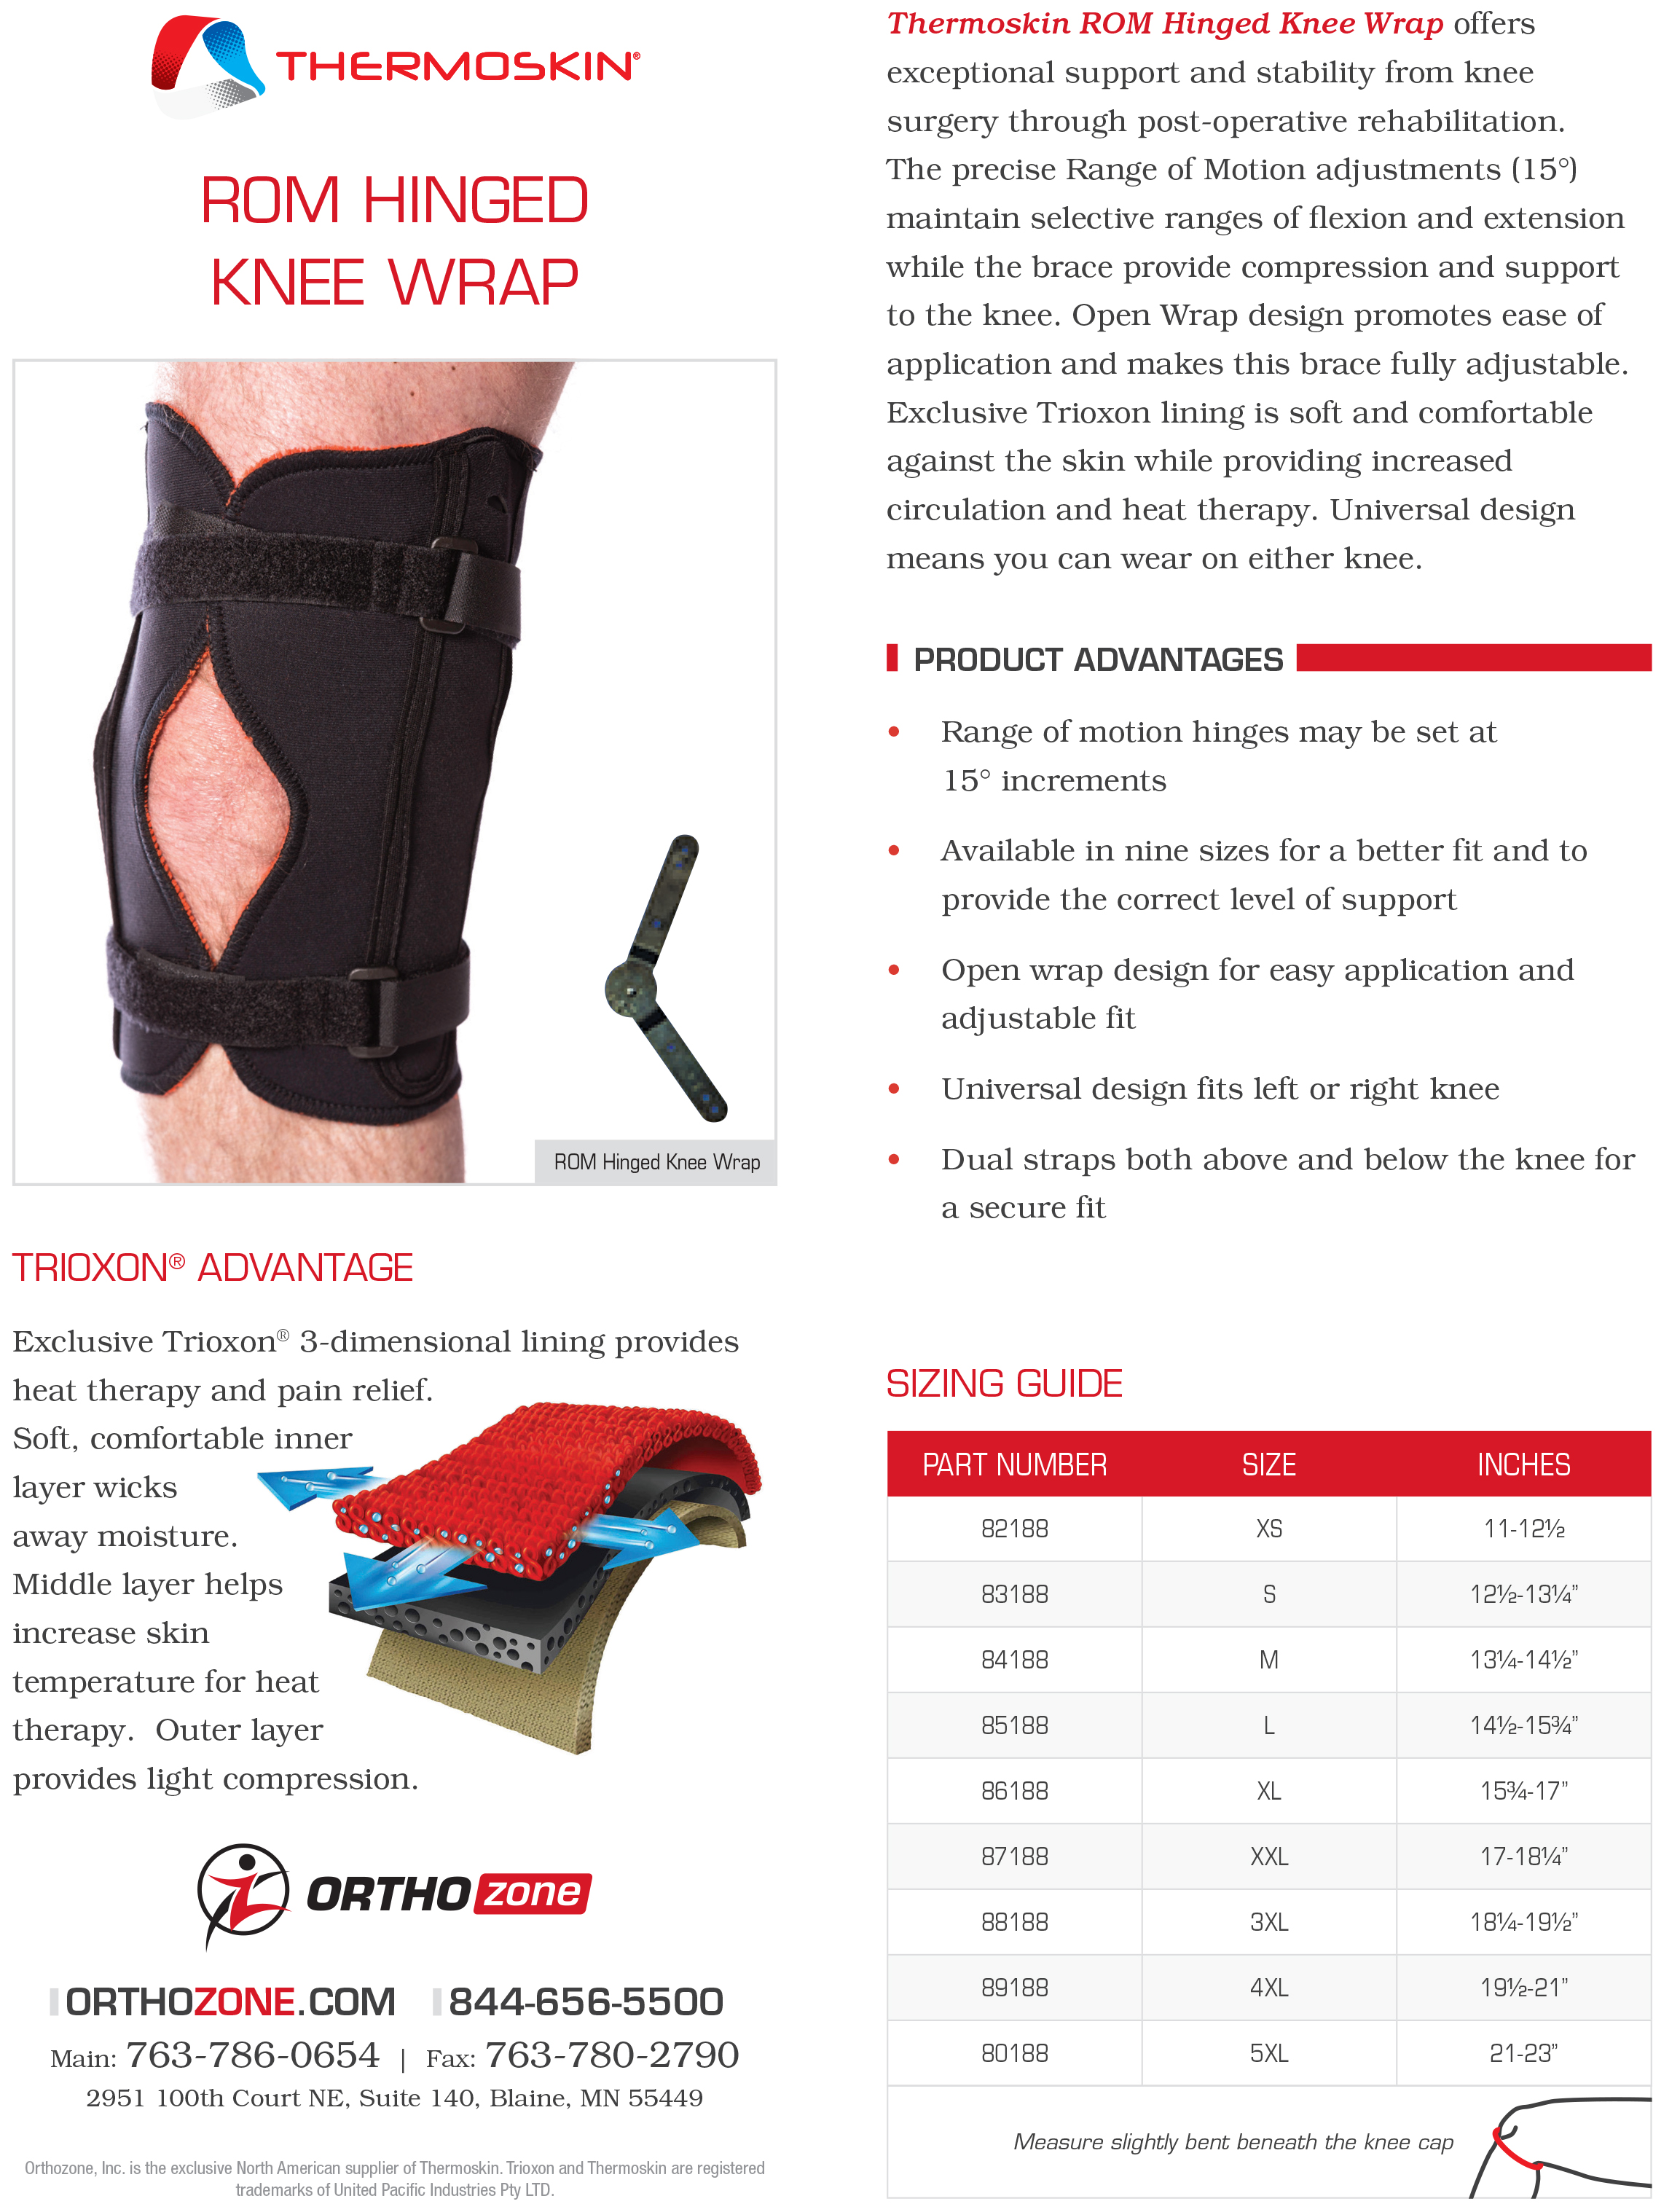 Thermoskin ROM Hinged Knee Wrap alternative product image 2